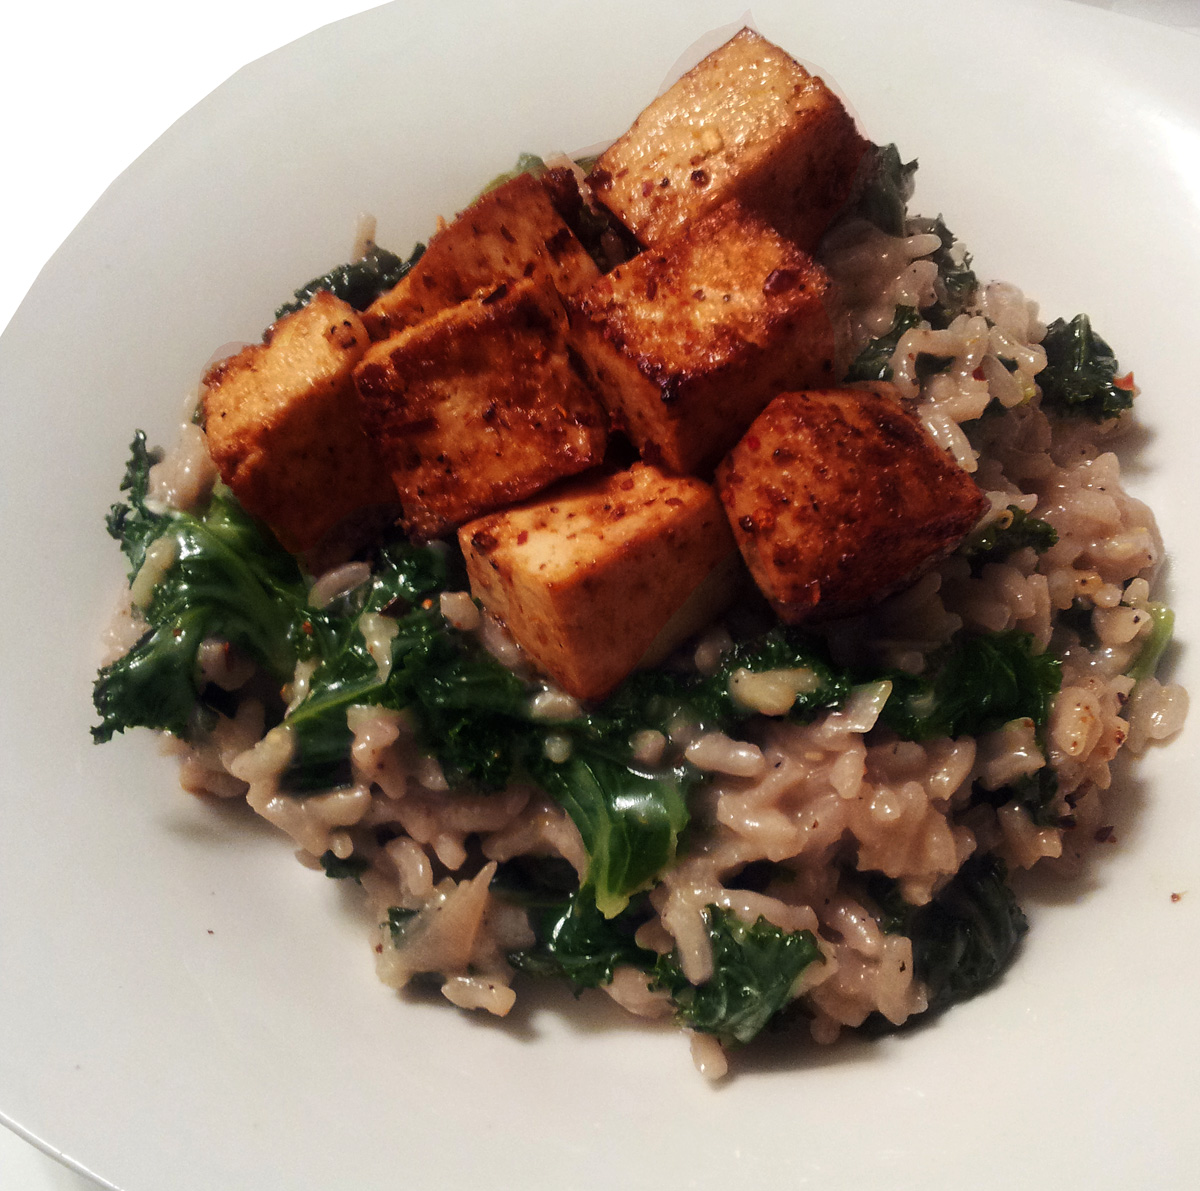 ... Hatred of Meat: Meyer Lemon & Kale Risotto with Garlic Roasted Tofu